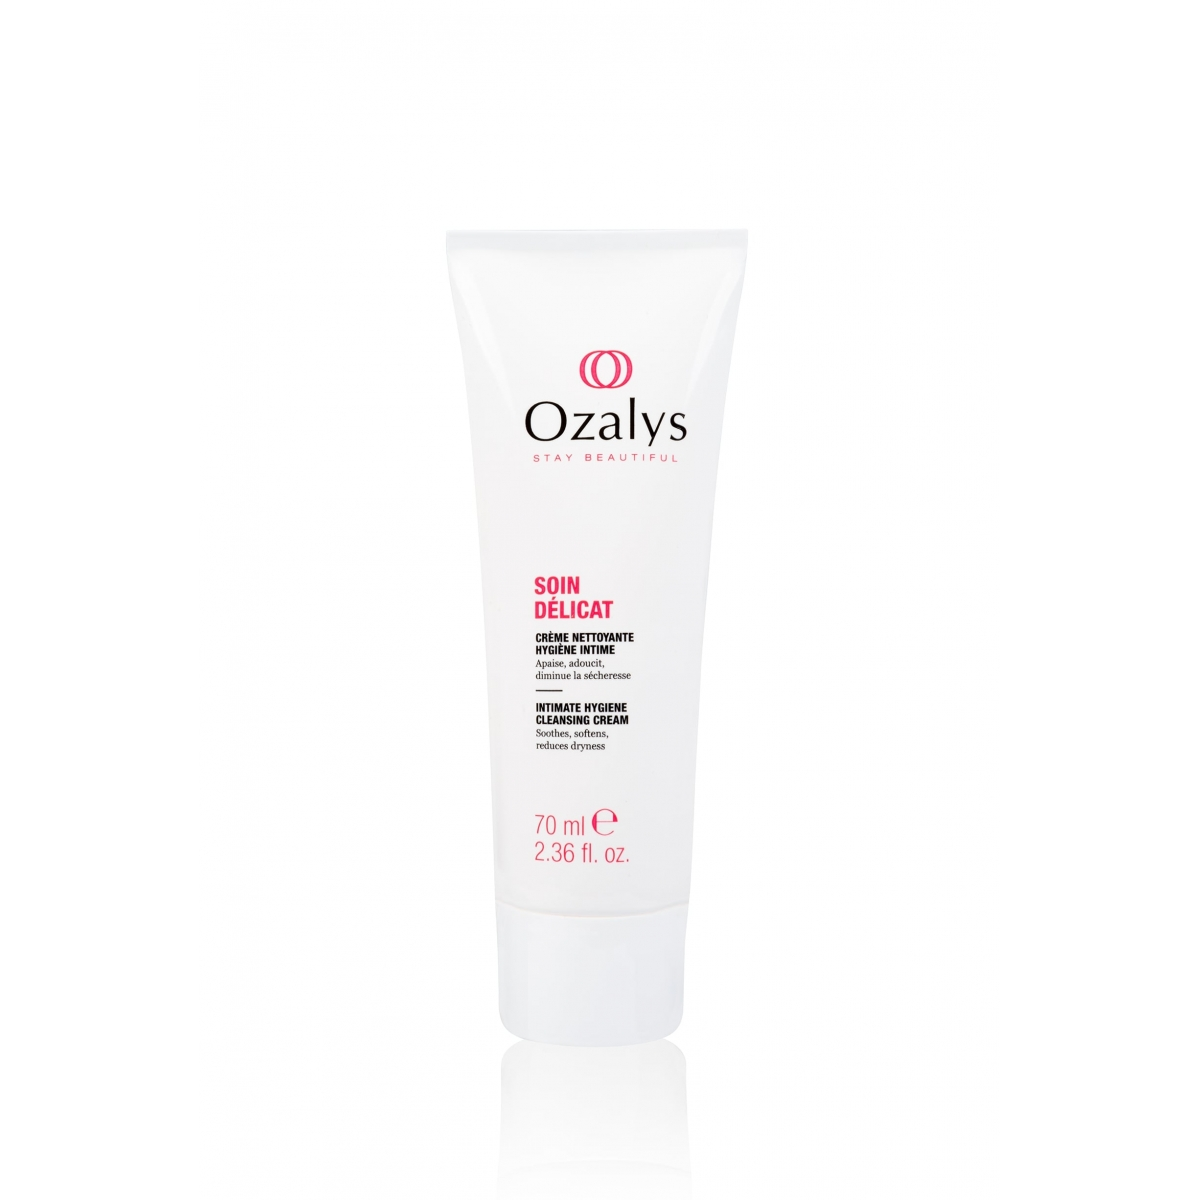 SOINS CANCER - CREME NETTOYANTE HYGIENE INTIME SOIN DELICAT OZALYS